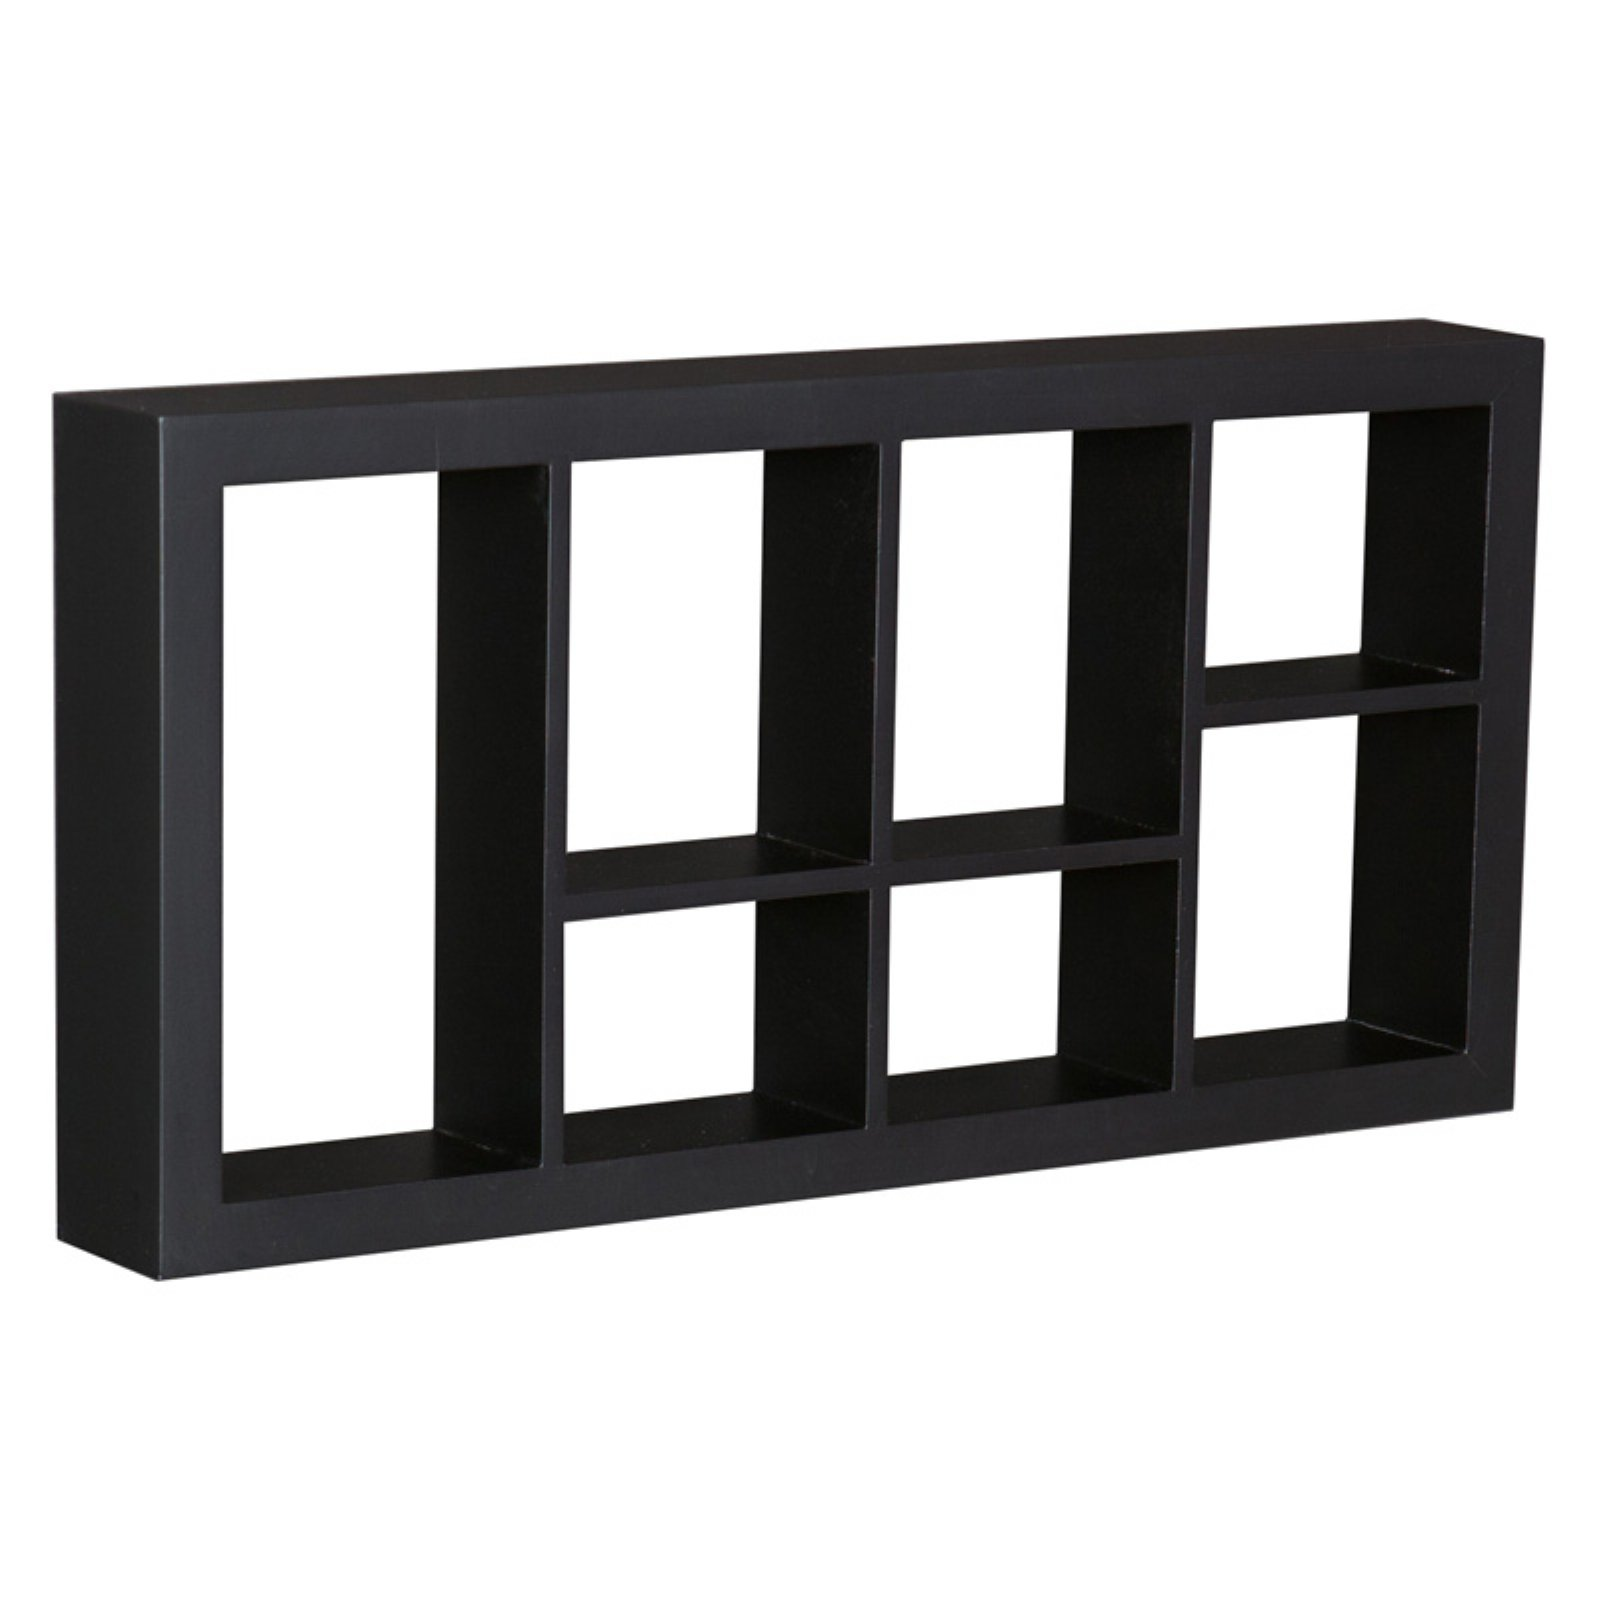 "Southern Enterprises Tyler Wall Display Cubes, 24"" x 24"""